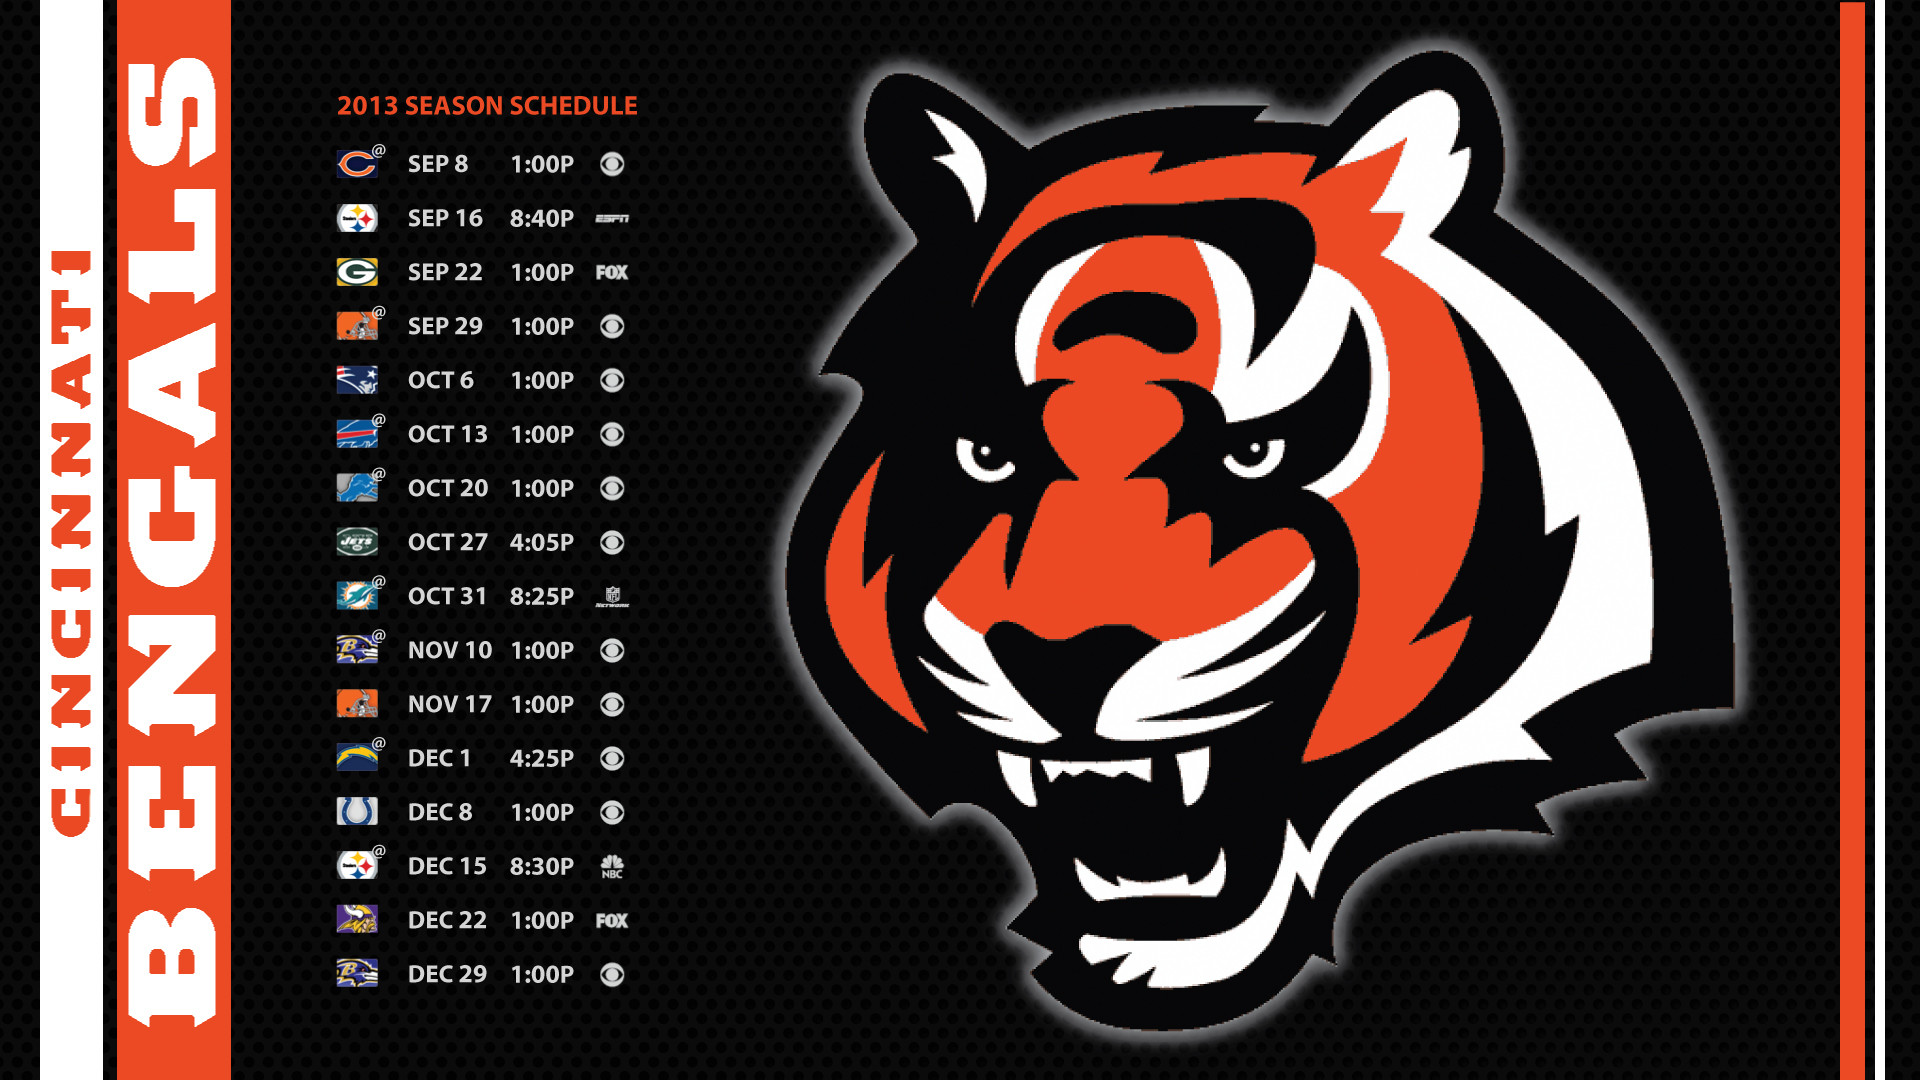 wallpaper images you would like us to post on bengals.com?